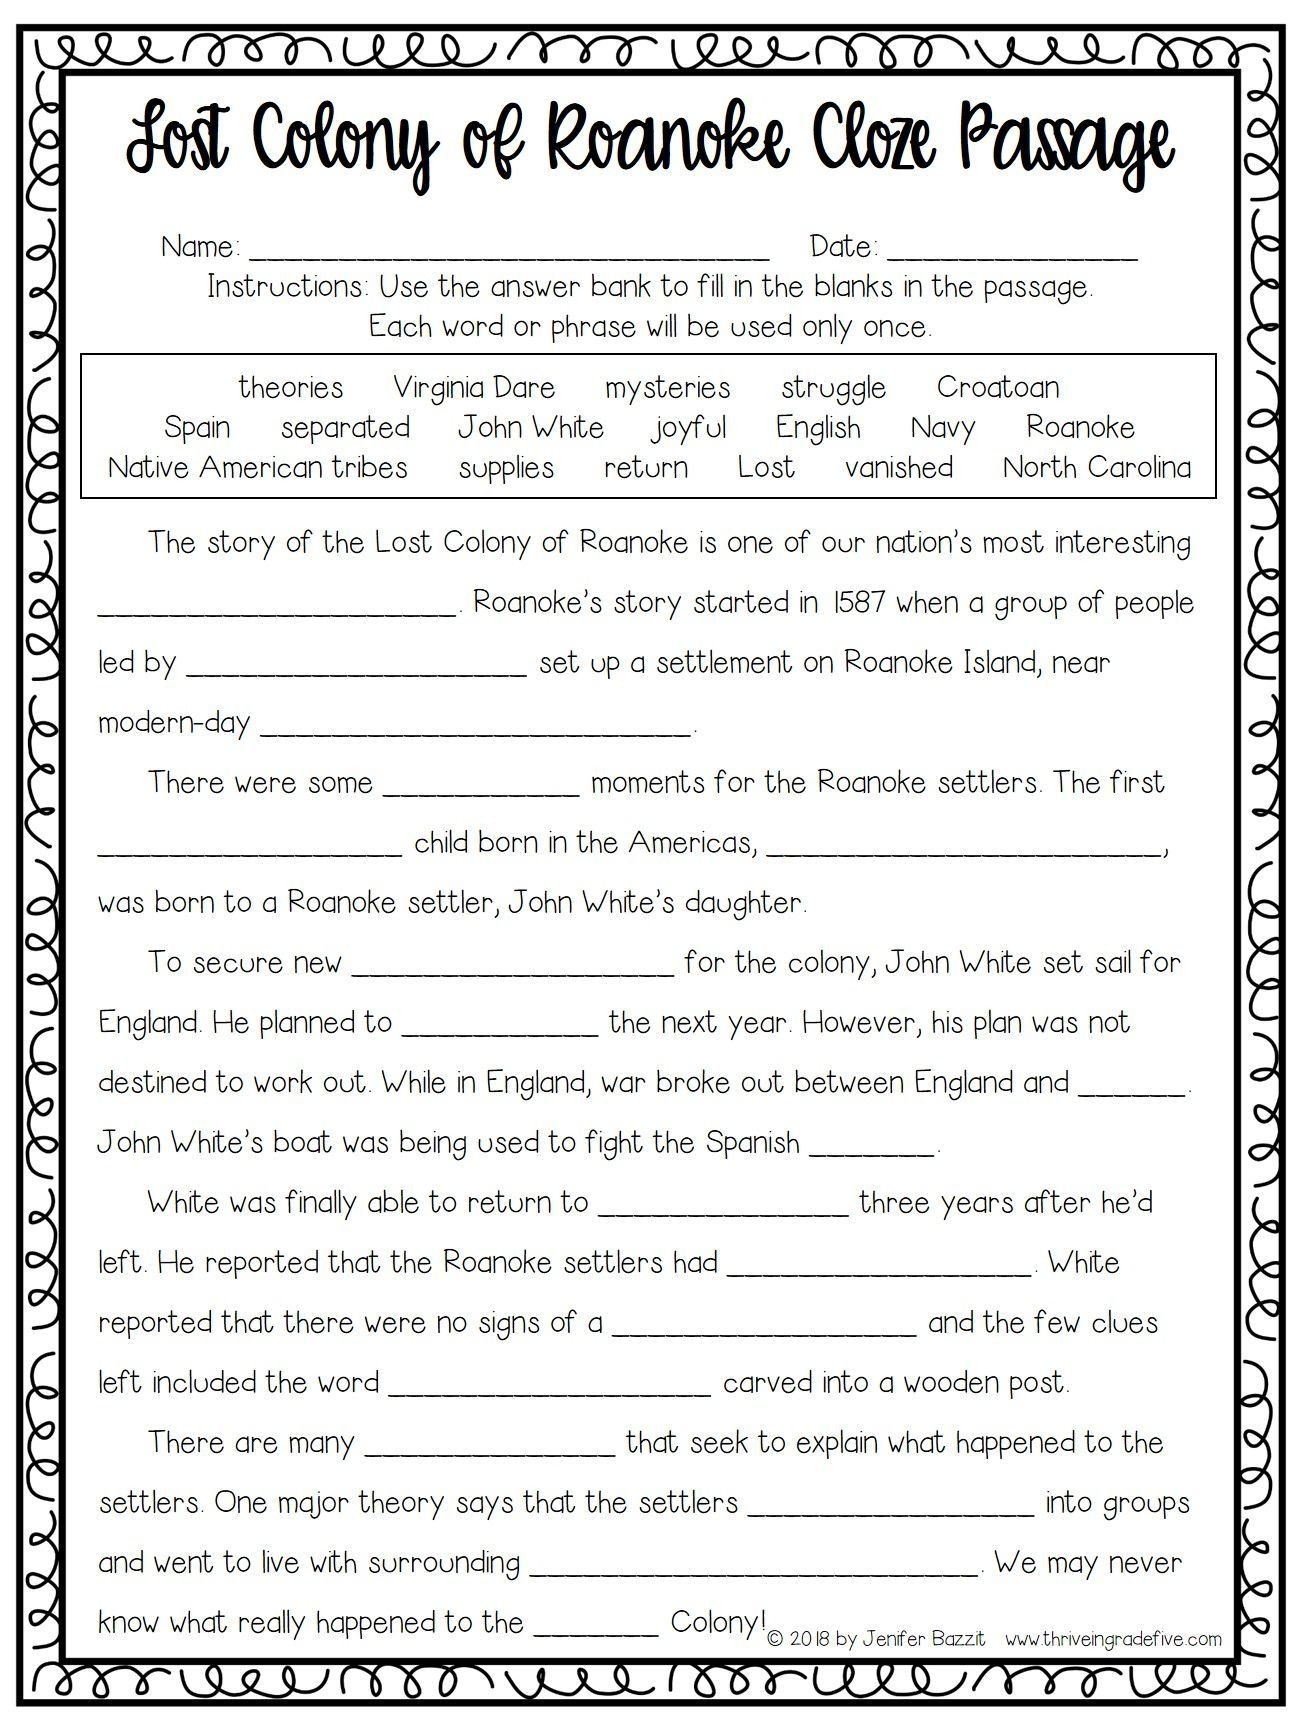 4th Grade History Worksheets Lost Colony Of Roanoke Activity Free